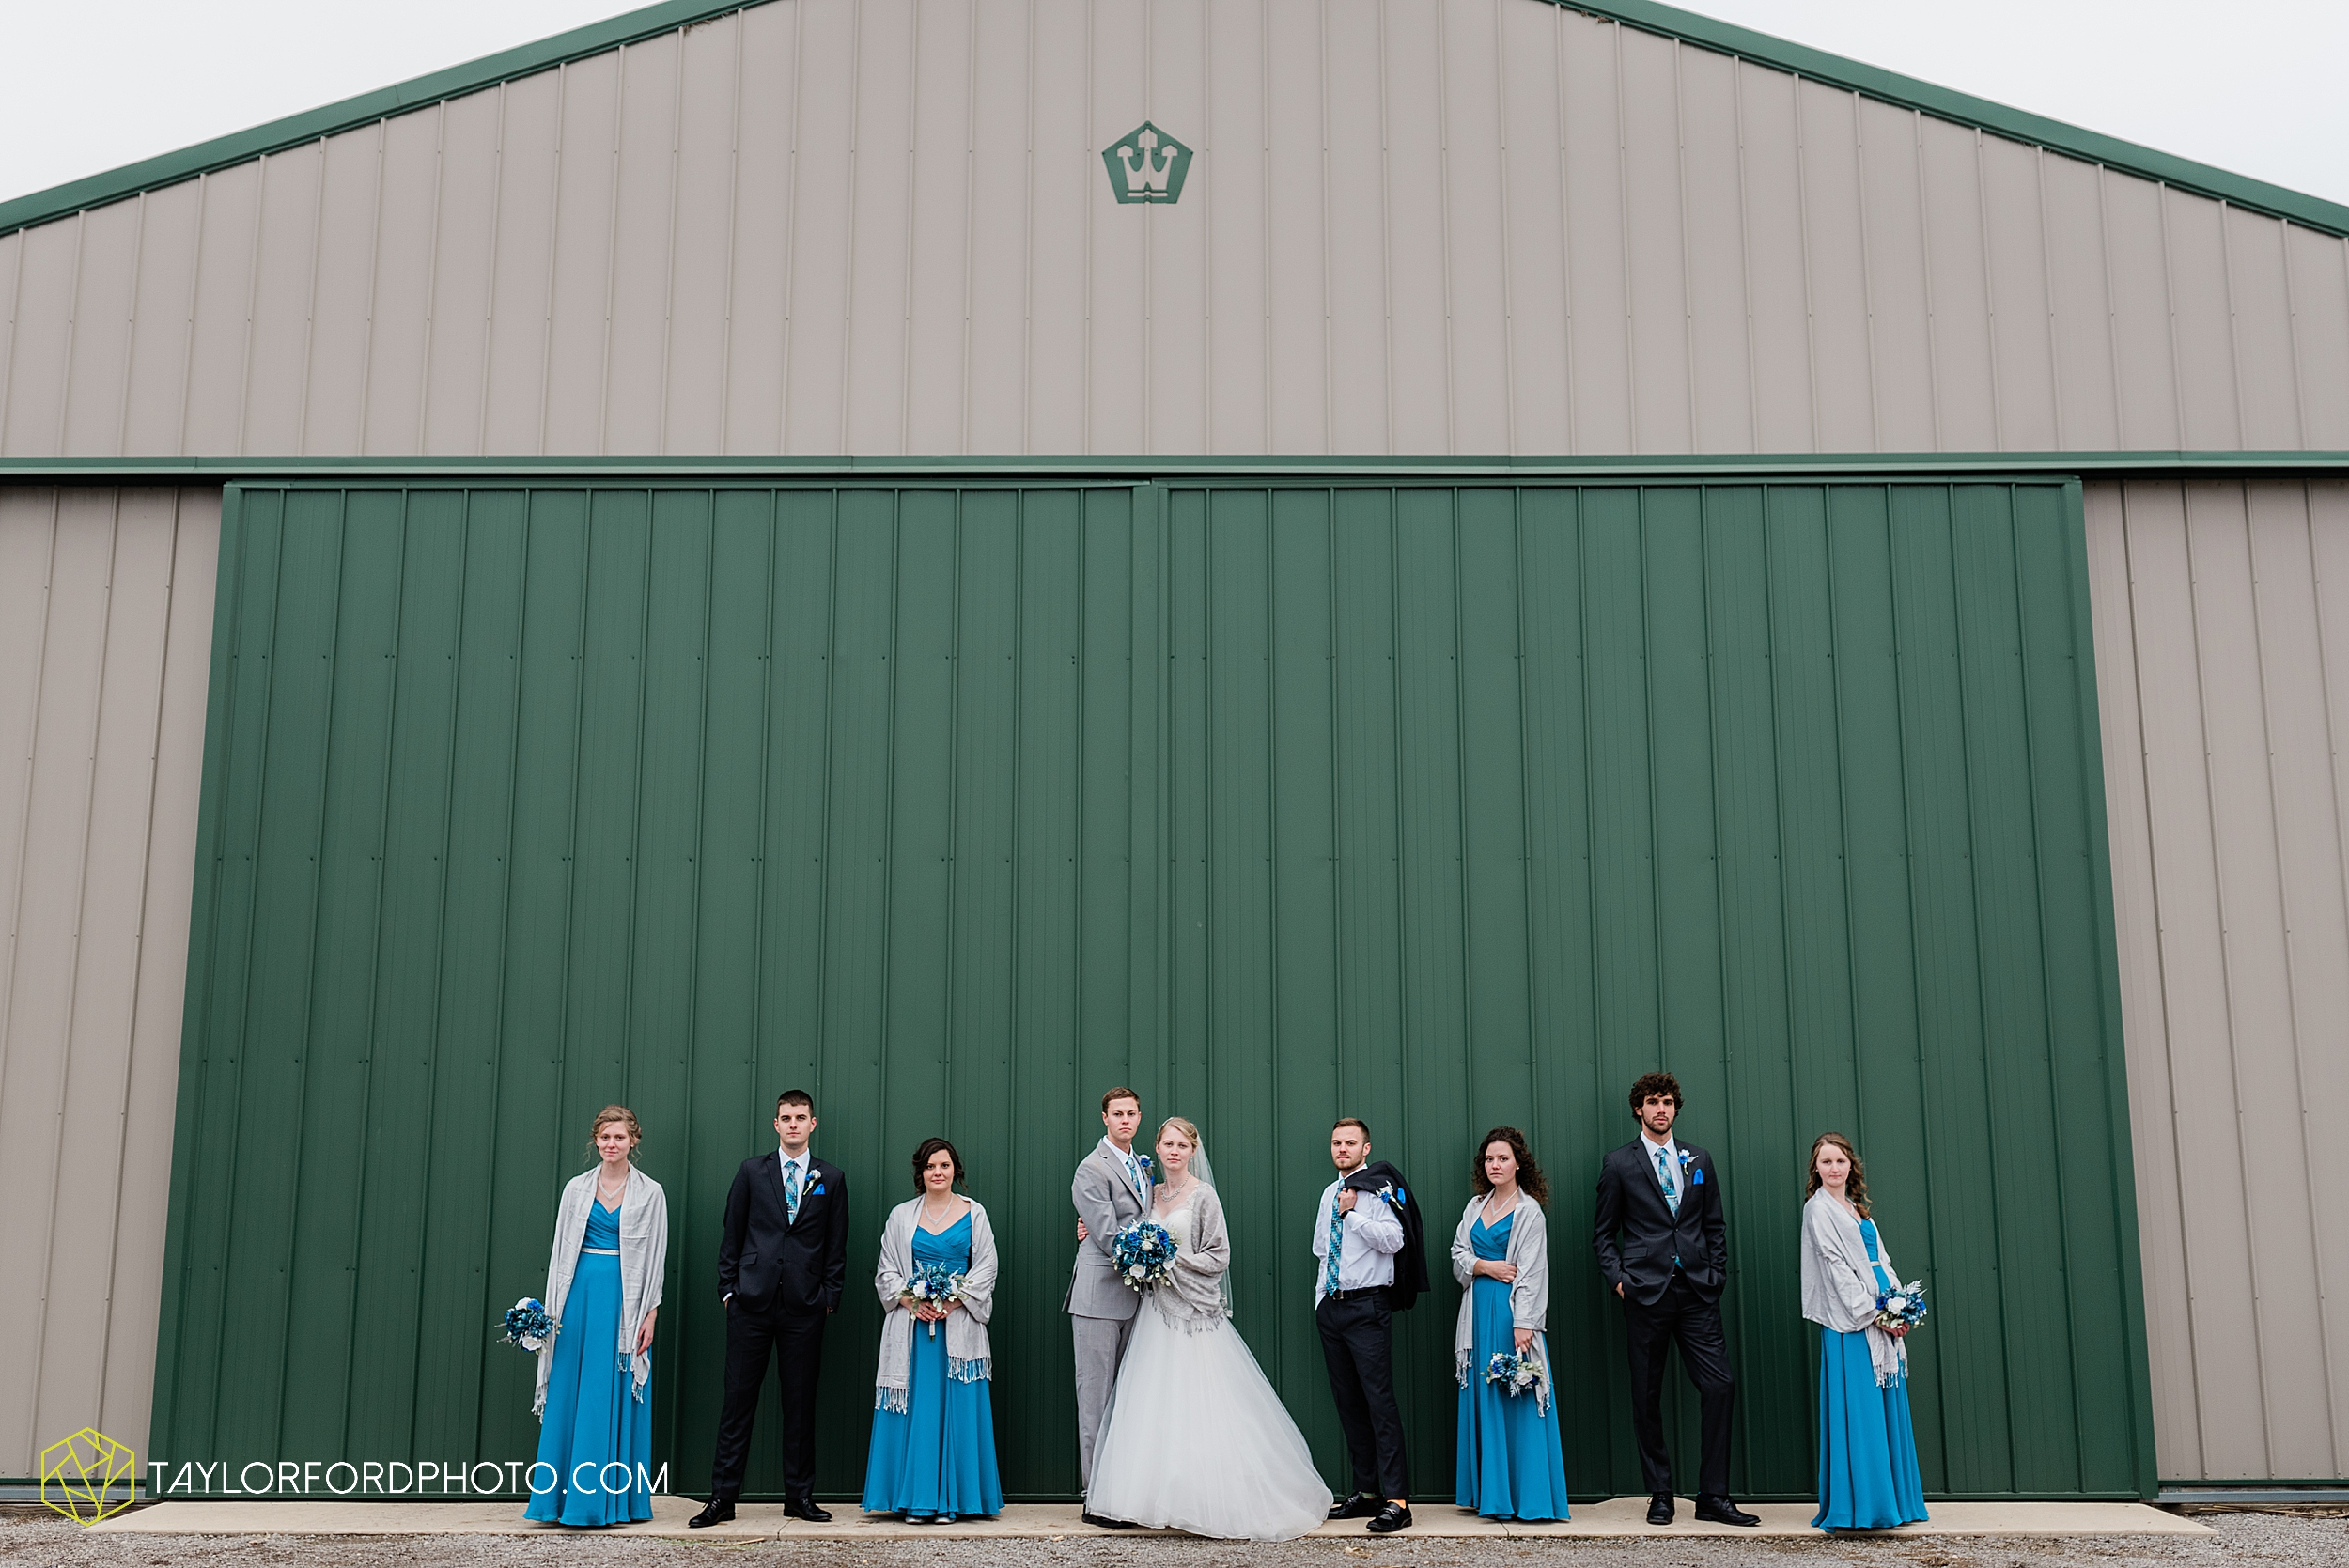 pleasant-view-church-christmas-celina-fraternal-order-of-eagles-reception-wedding-wren-willshire-van-wert-ohio-photography-taylor-ford-hirschy-photographer_2165.jpg